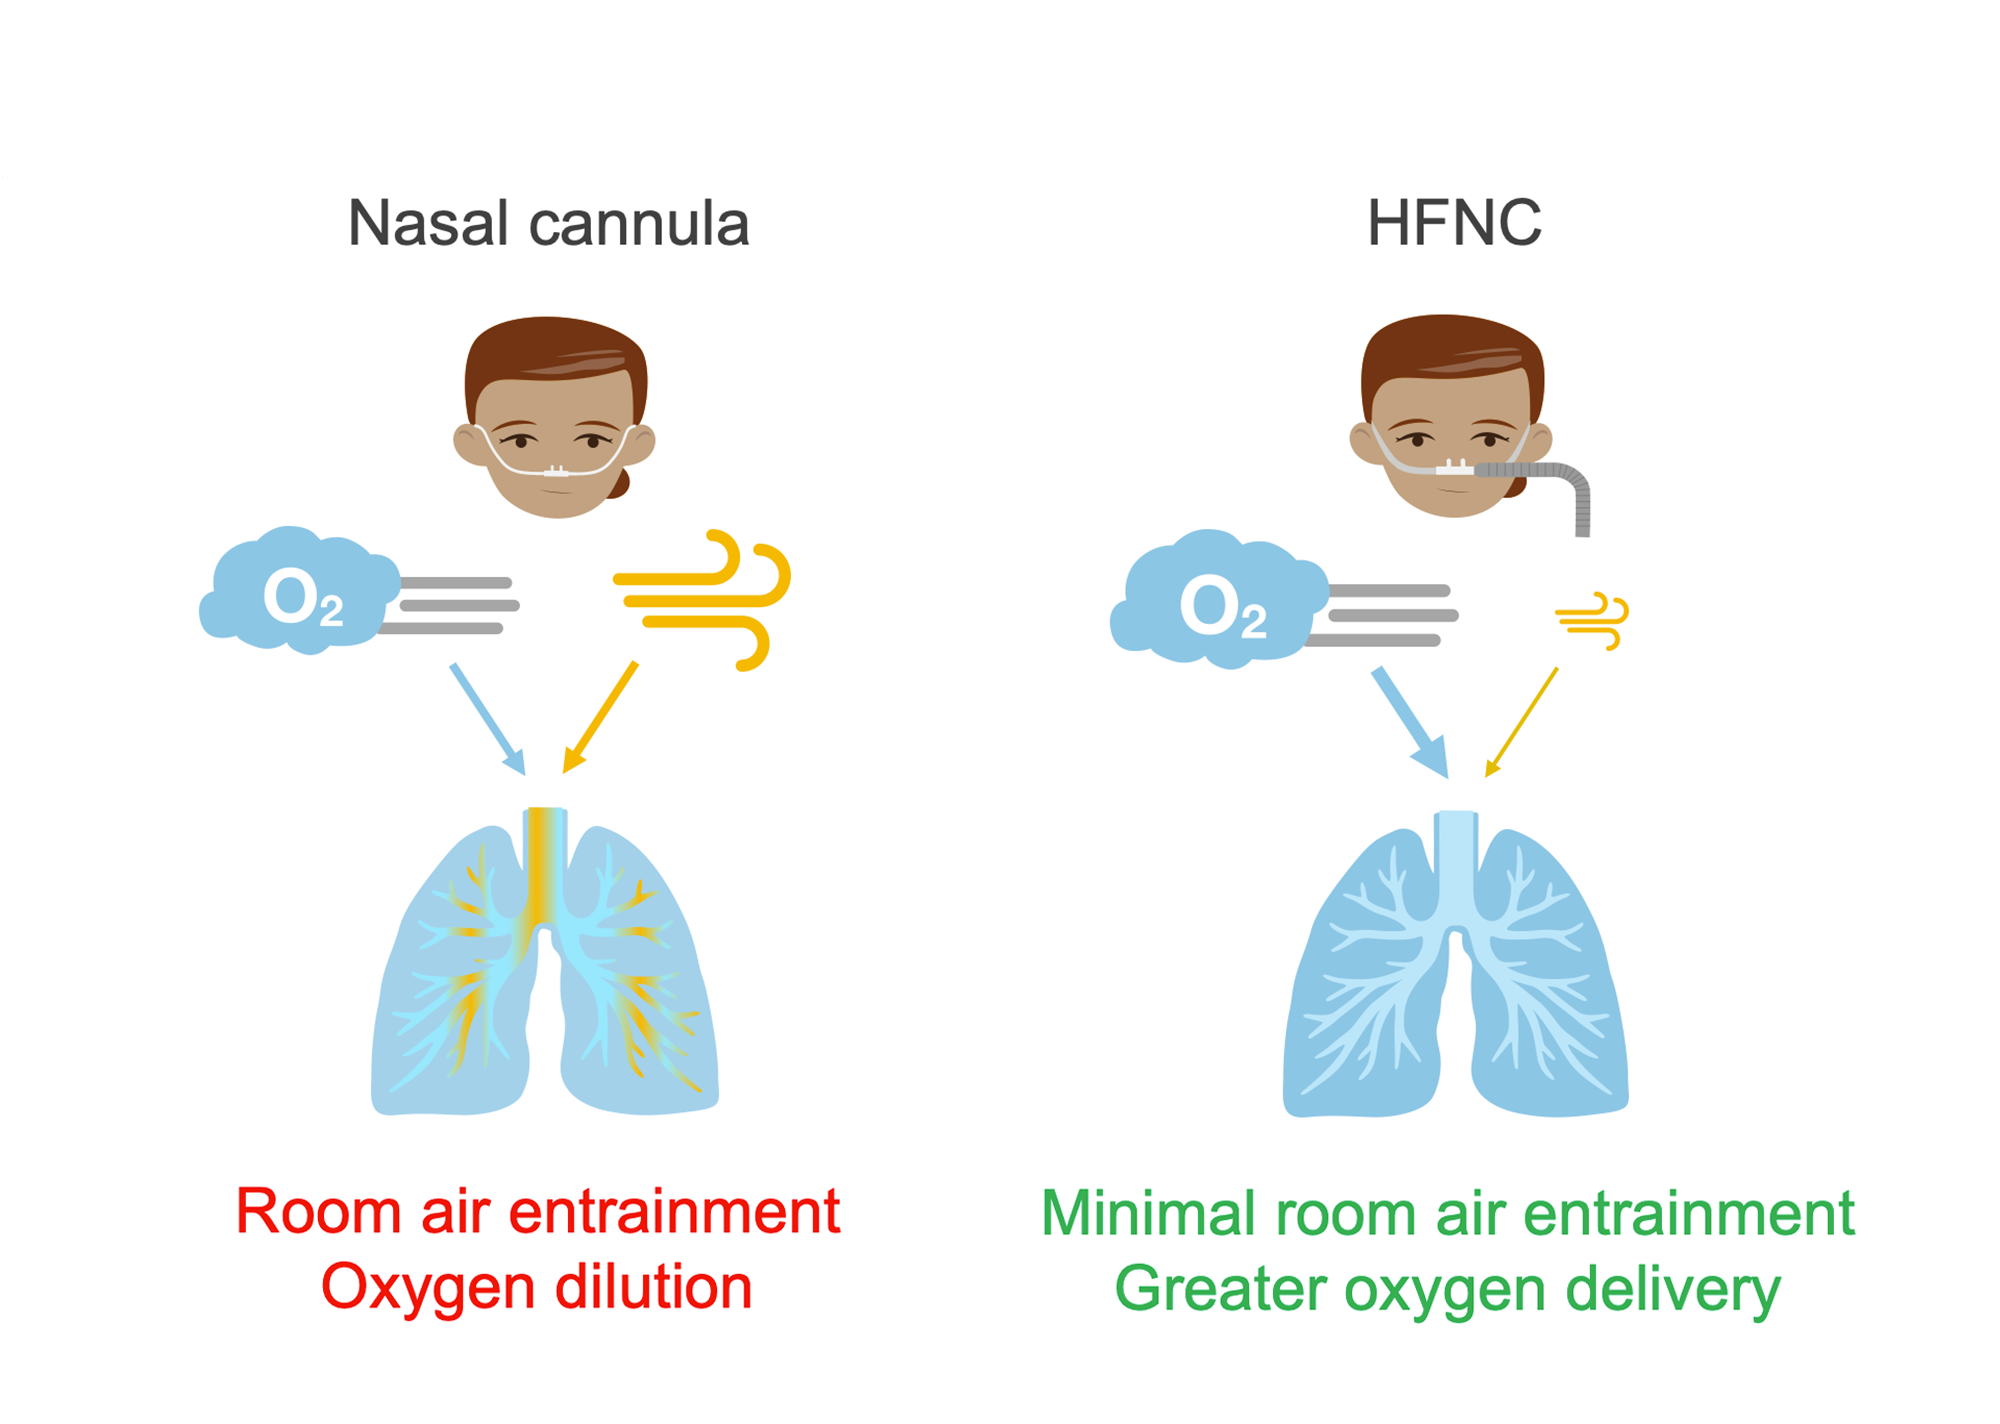 Two women: one with nasal cannula and one with larger tubing indicating high-flow nasal cannula (HFNC). Lungs showing difference in air flow in each condition. Illustration.